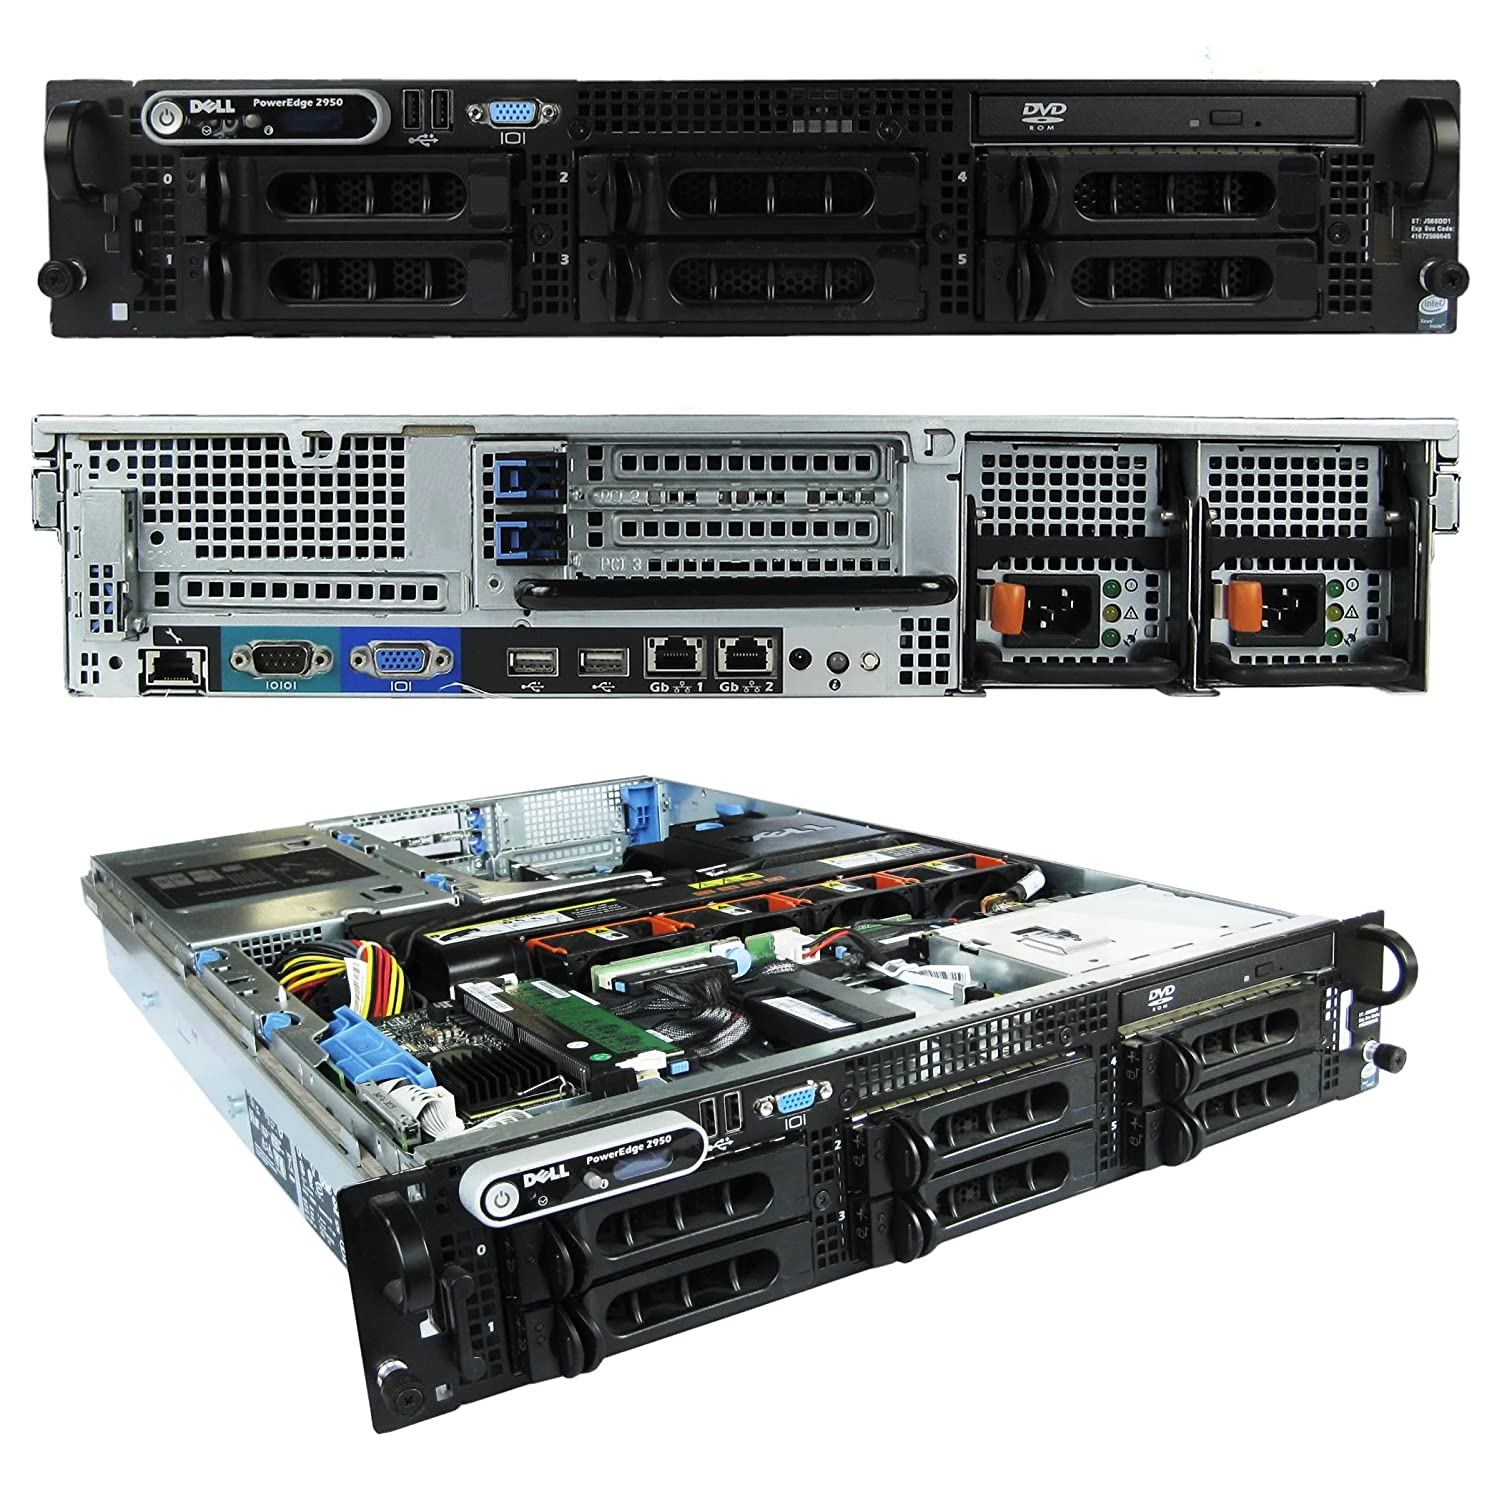 Amazon.com: Dell PowerEdge 2950 Server with 2x3.0GHz Xeon Processors and  16GB Memory - - 2x73GB / PERC 5 RAID 10K SAS Hard Drives - No OS -:  Computers & ...